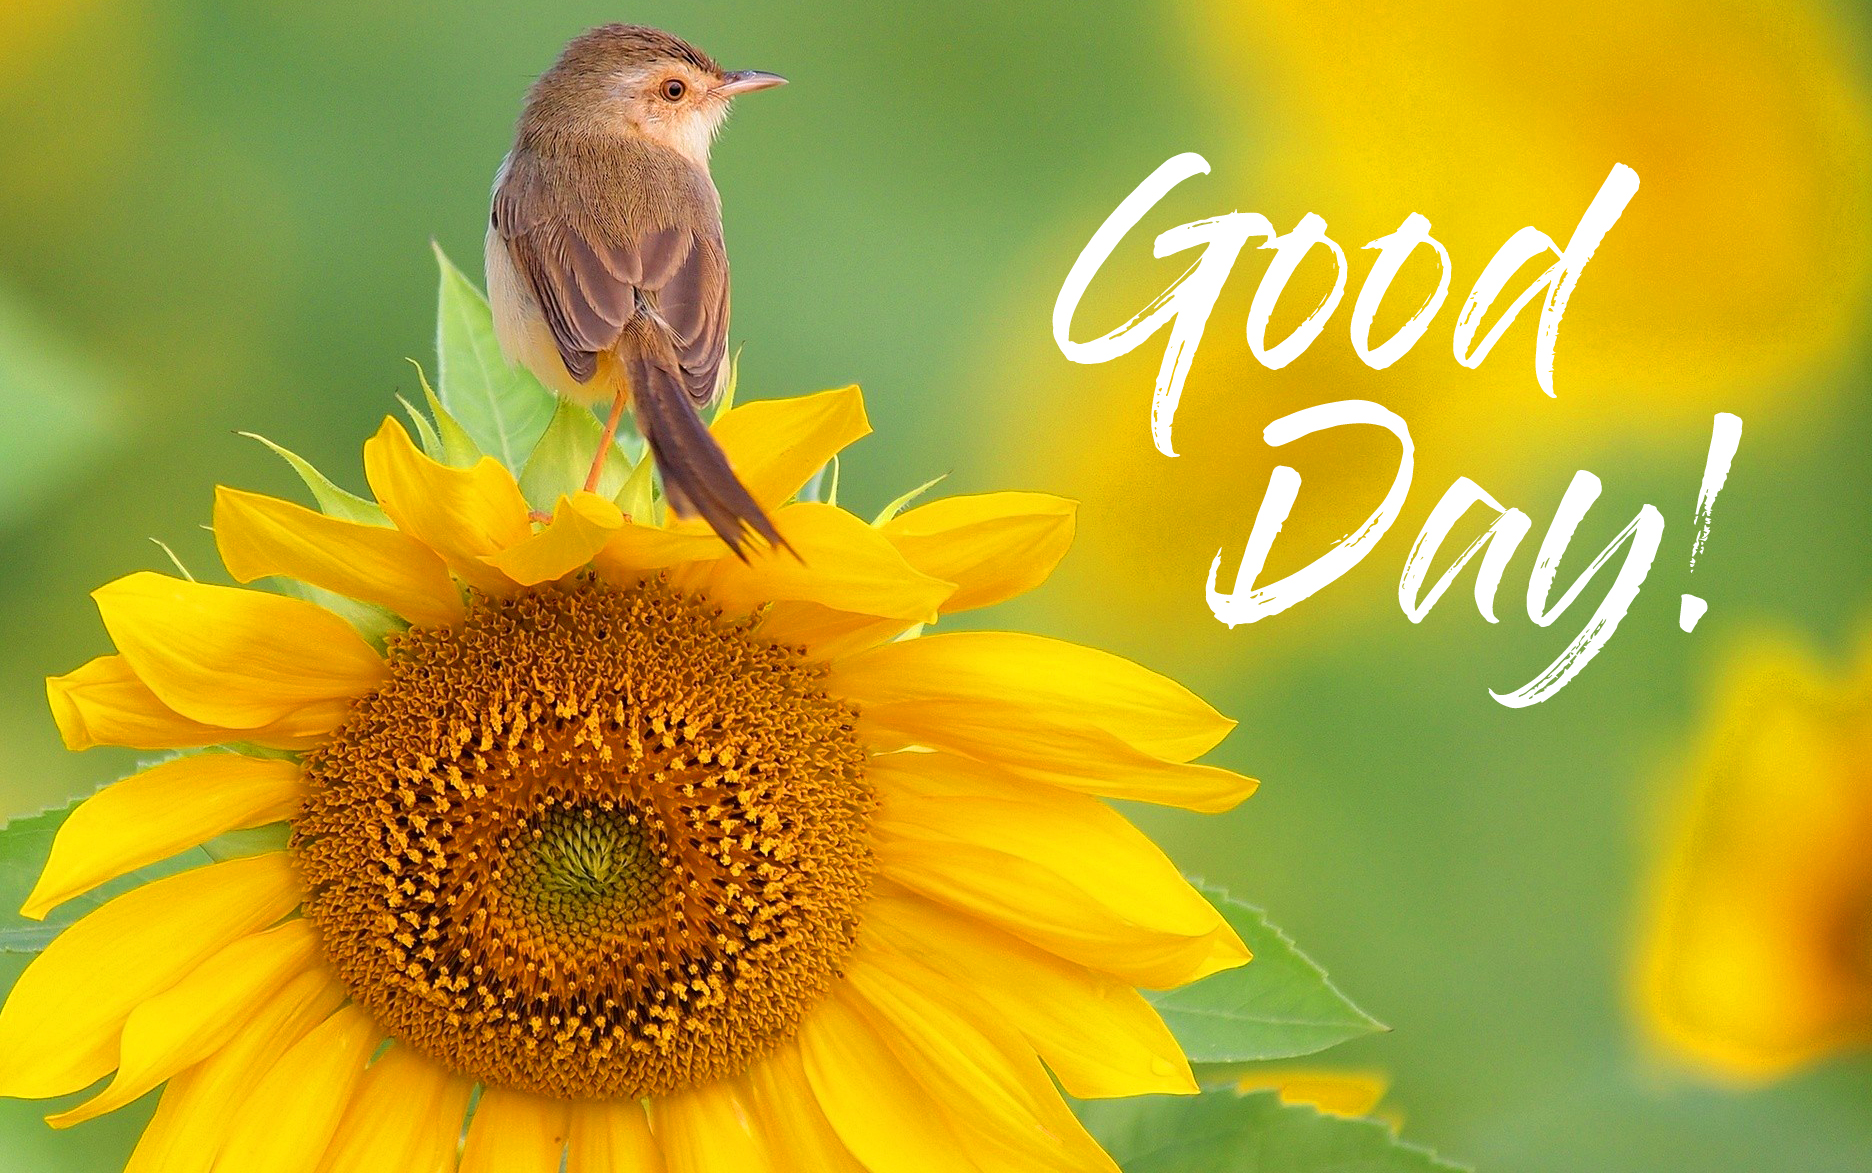 Sunflower with Bird and Good Day Wish